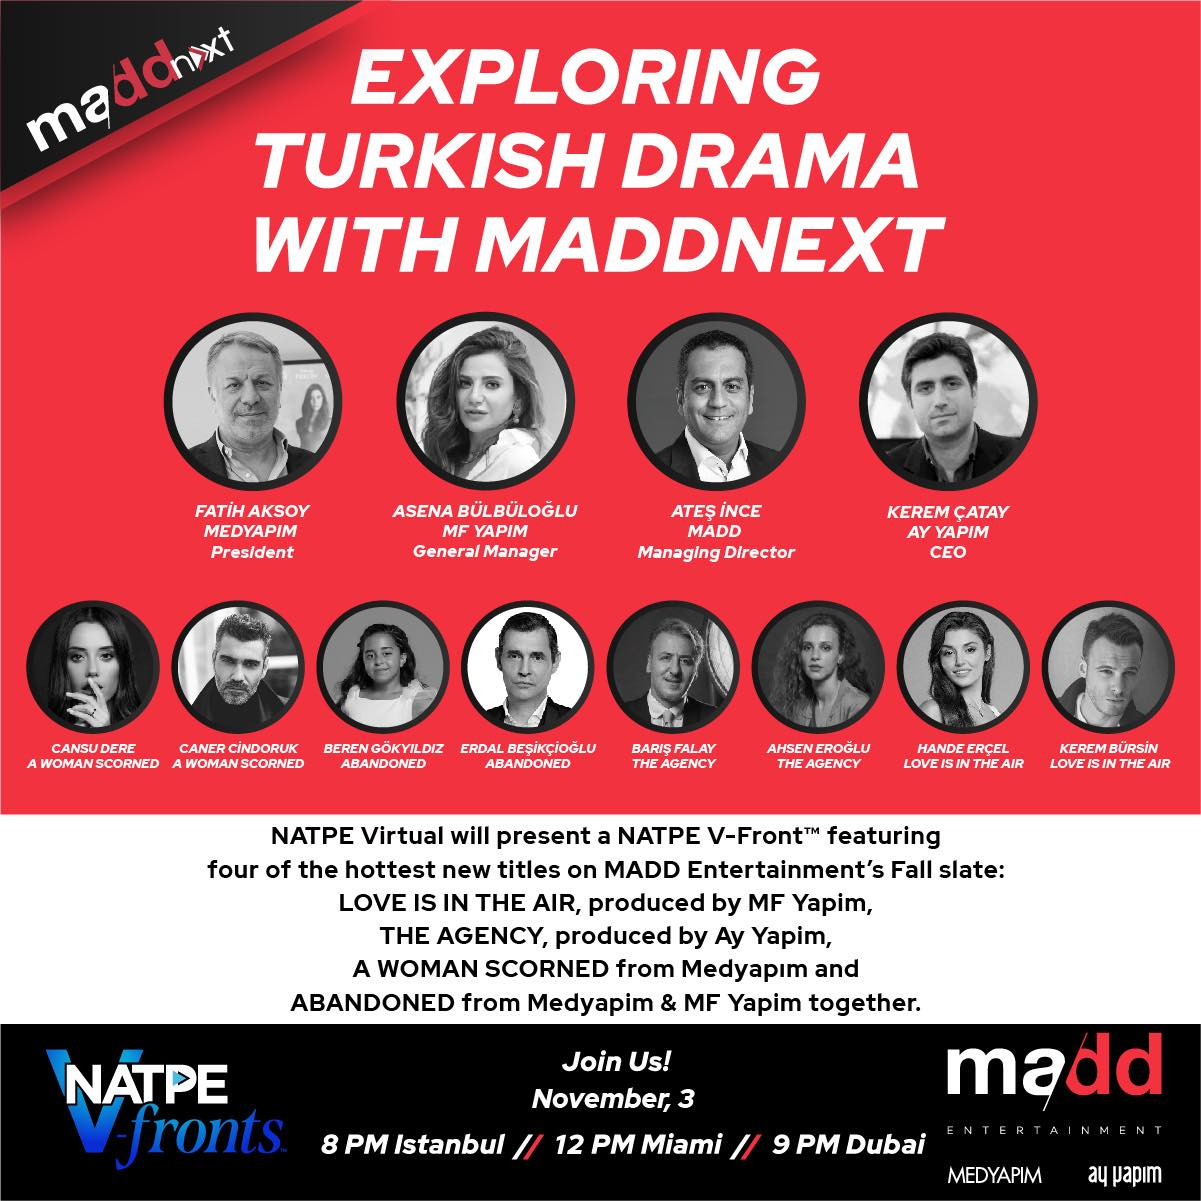 Exploring Turkish Drama With MADDNEXT